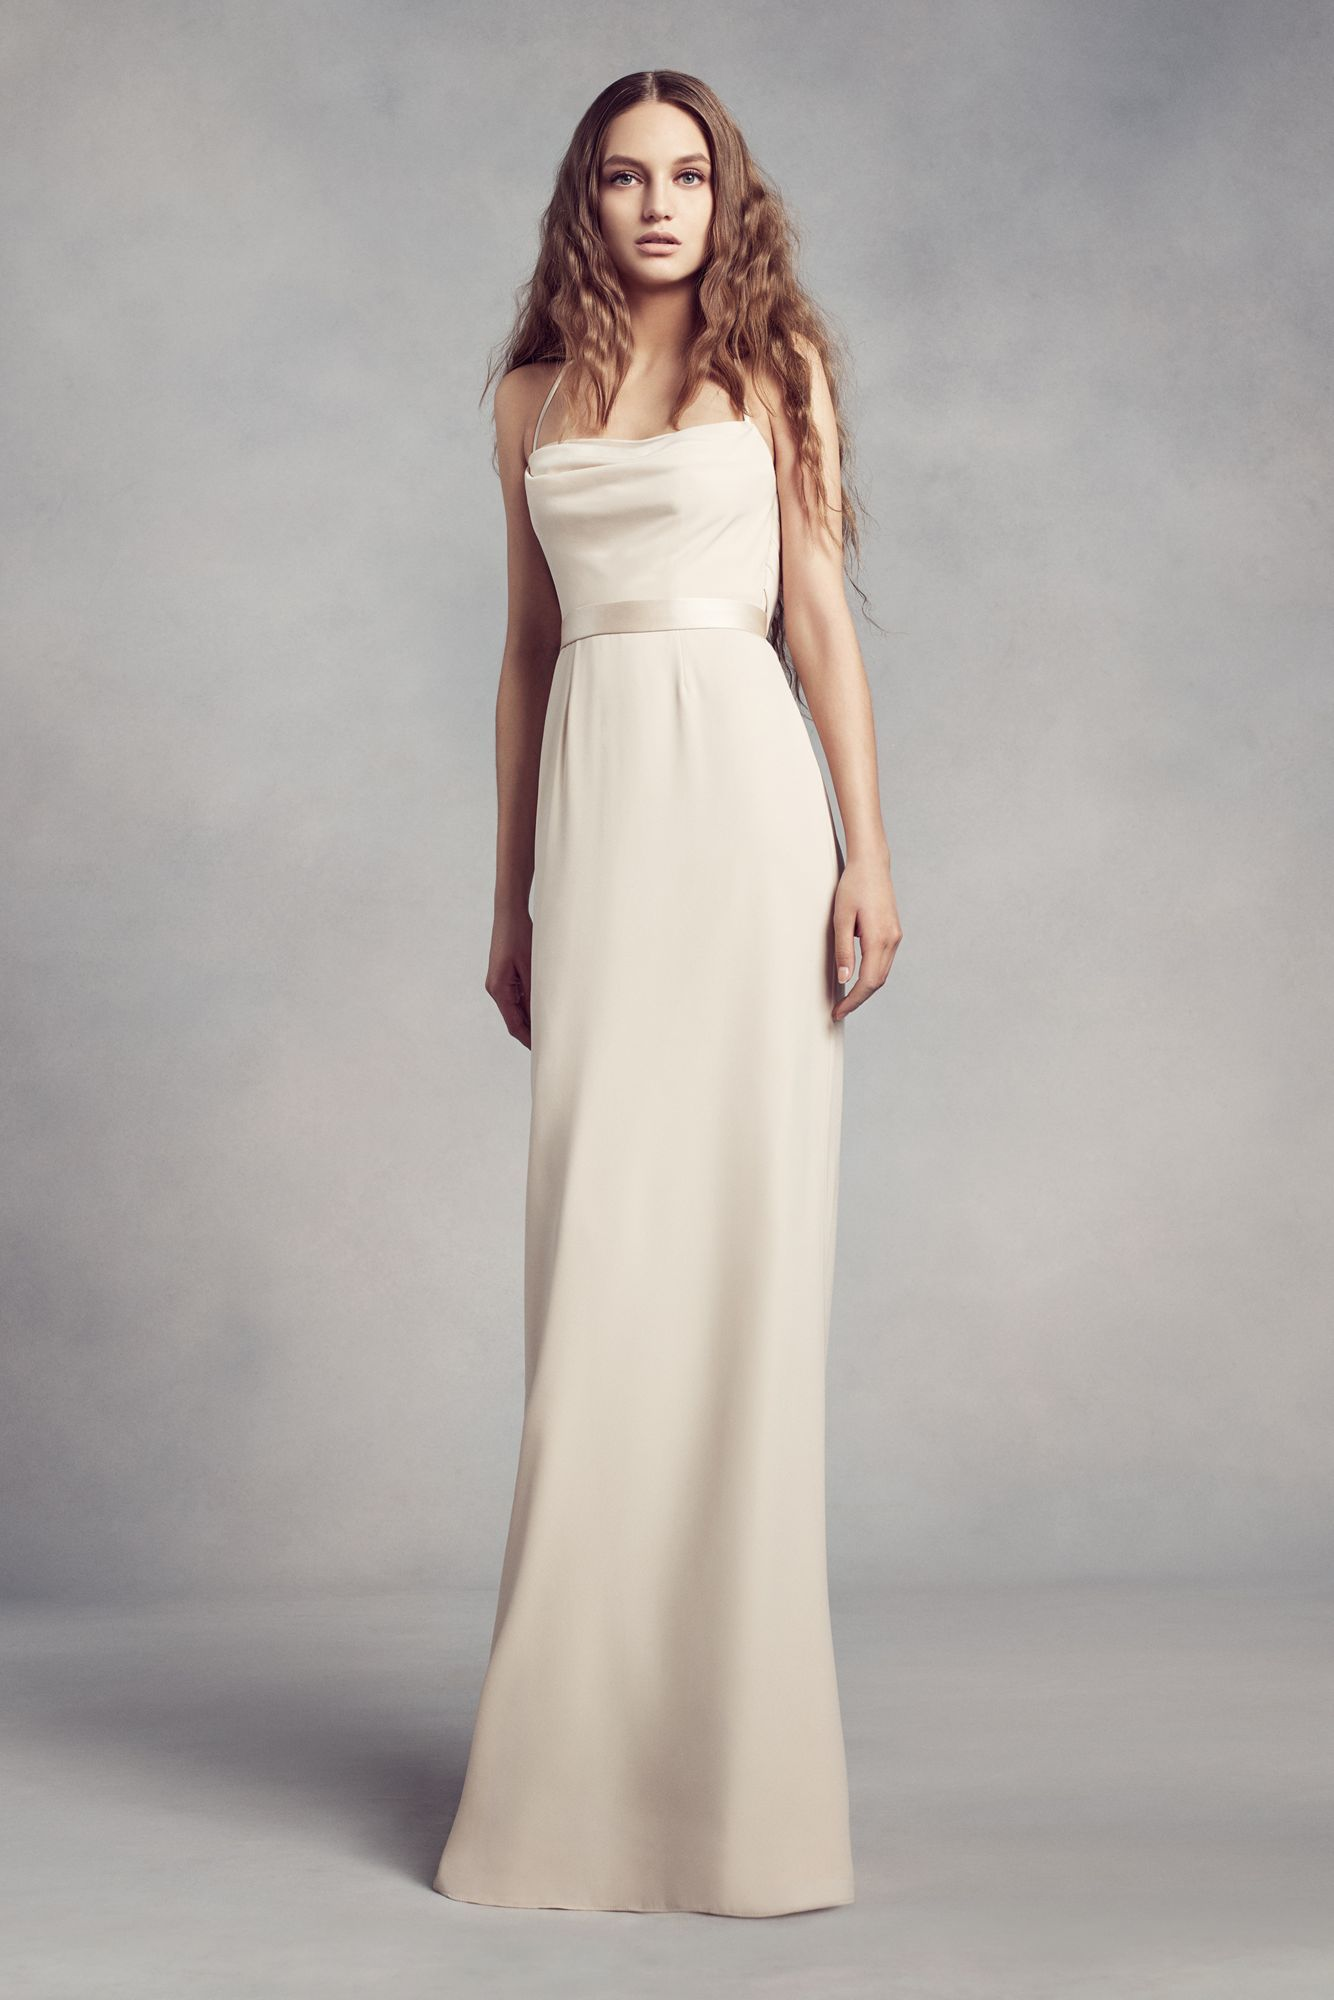 Spaghetti staps long illusion cowlback bridesmaid gowns style